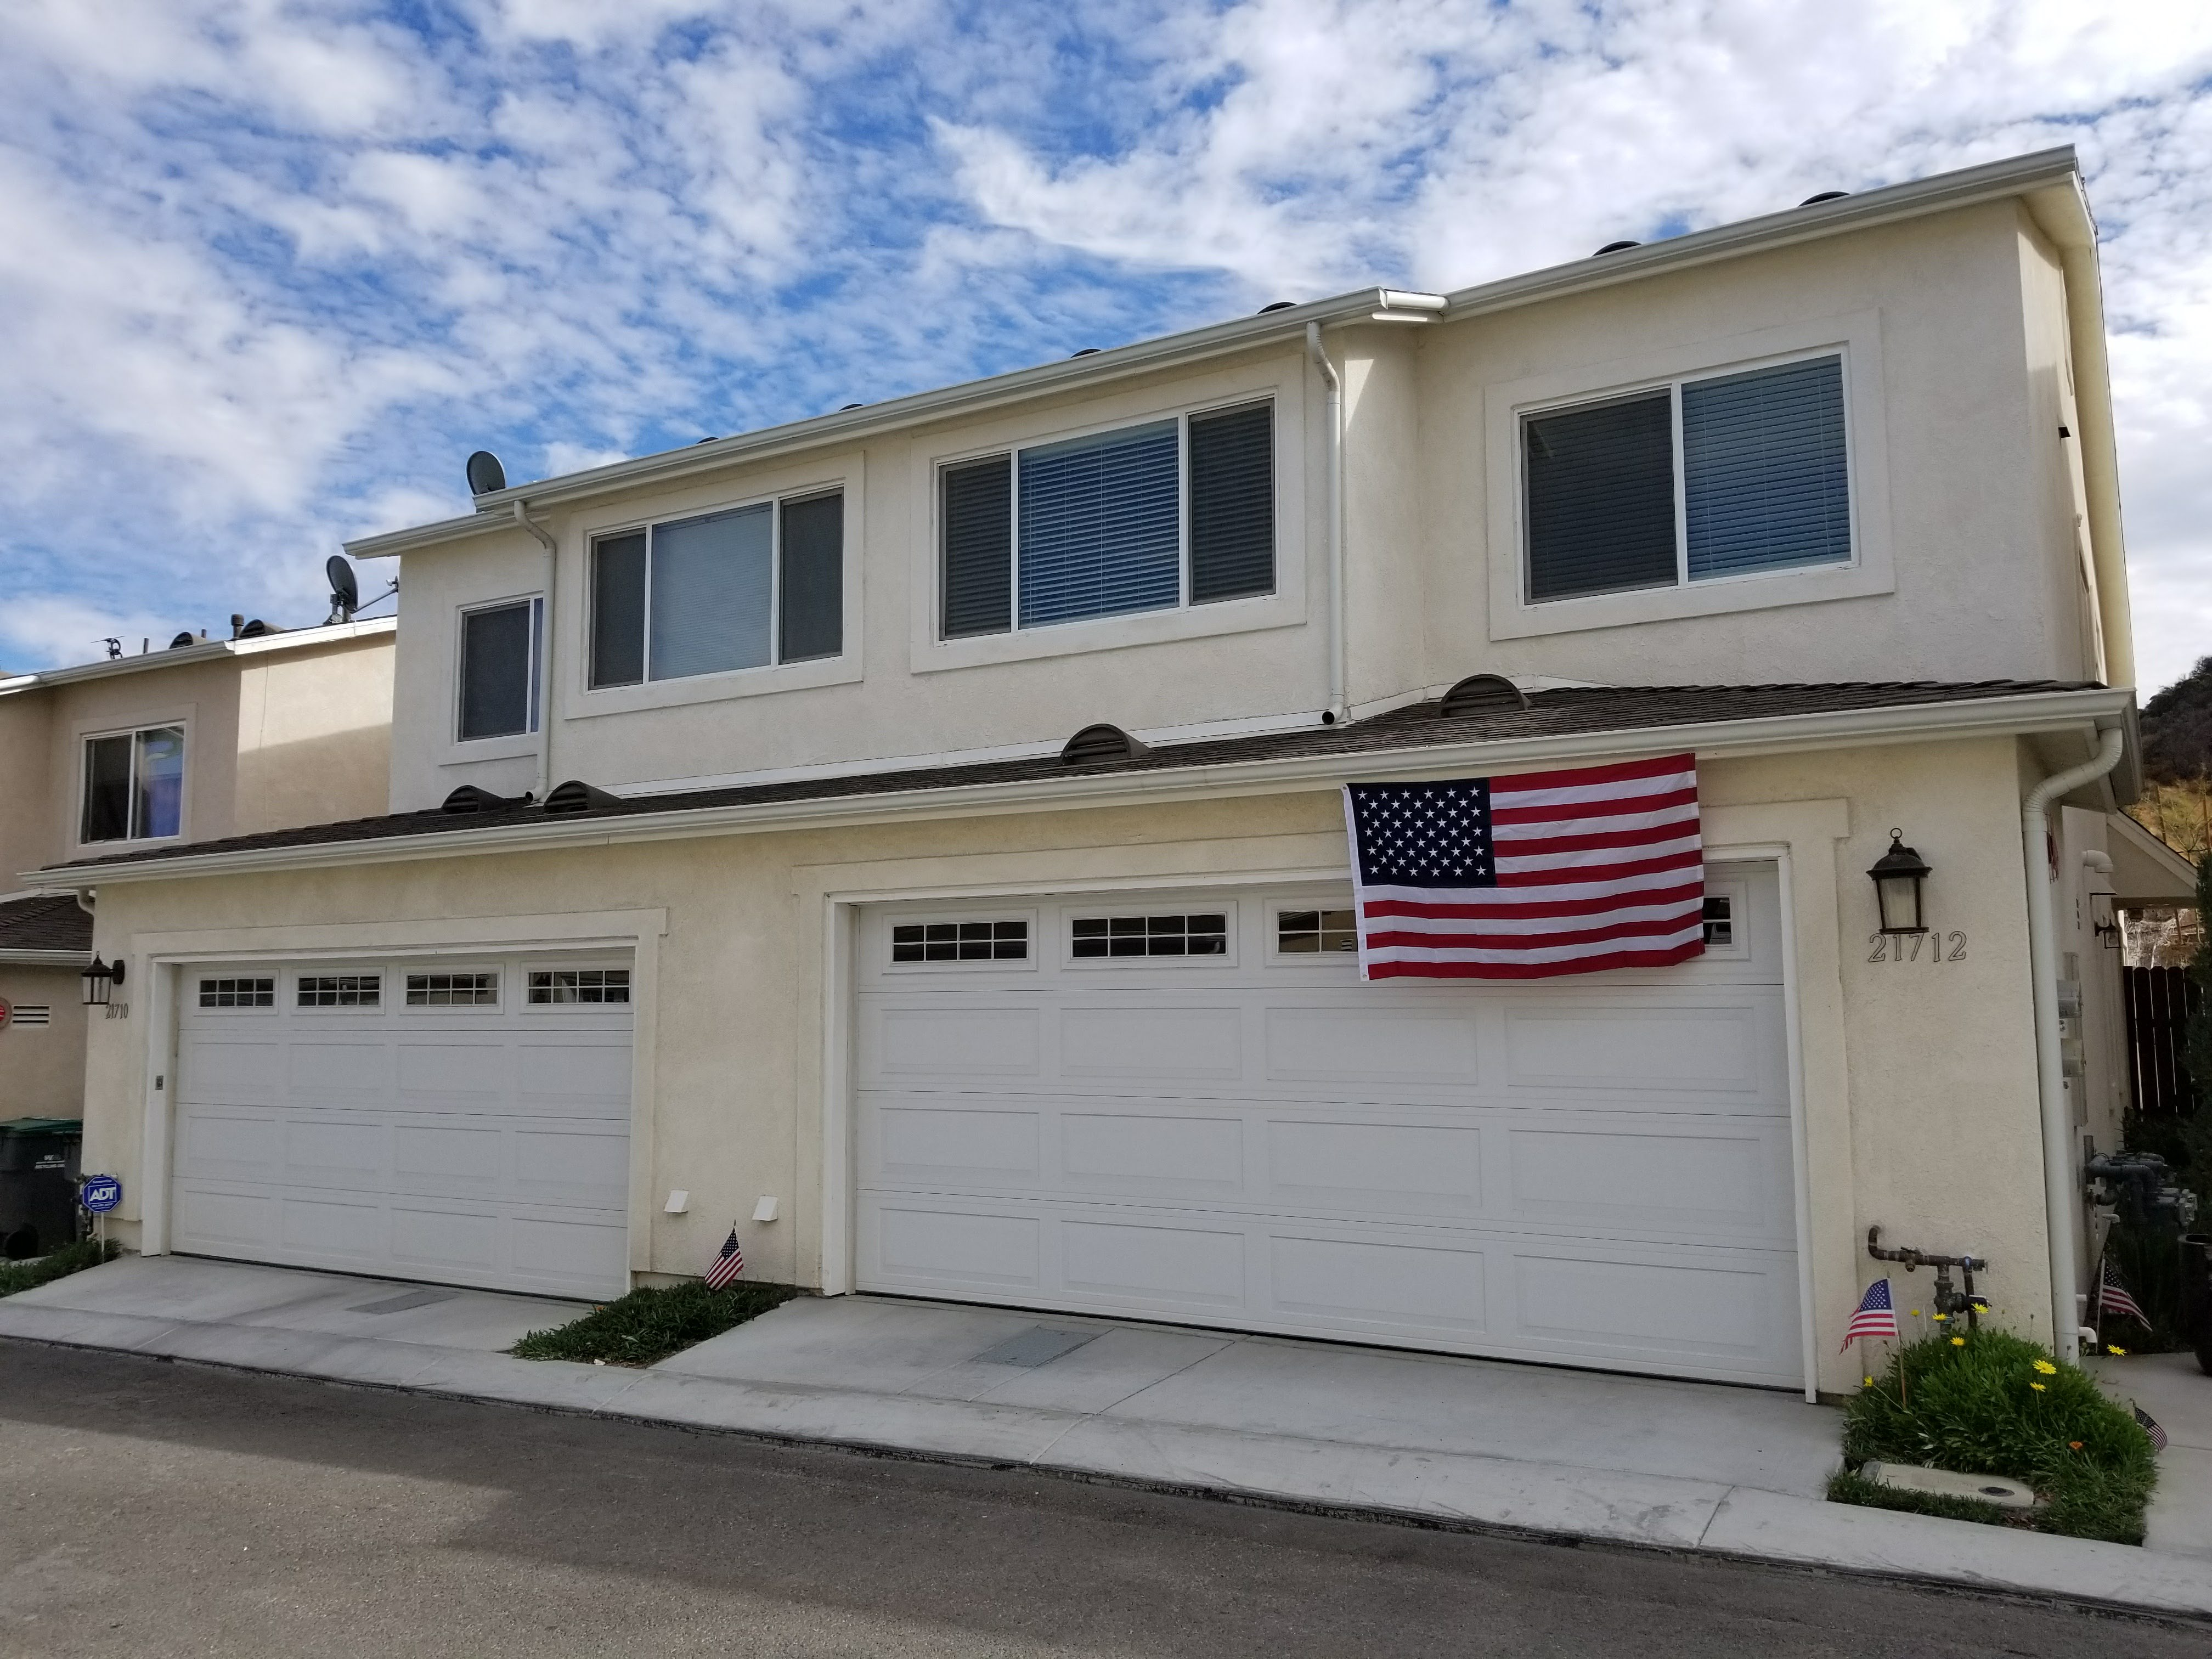 [Parade.com] Homes 4 Families Helps Low-Income Veterans Find Path Out of Poverty